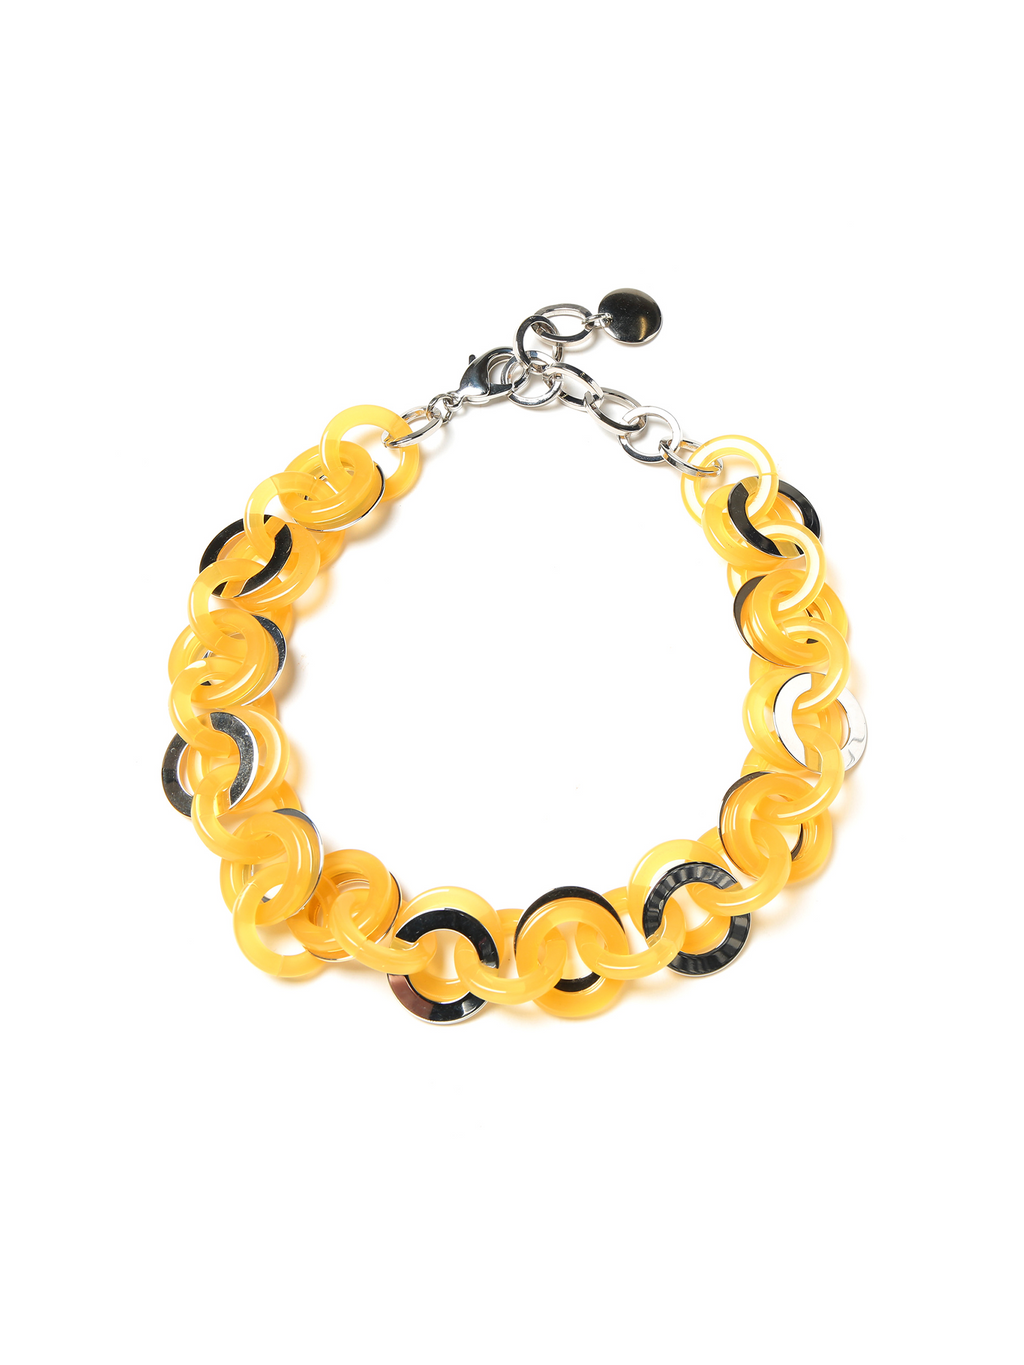 PONO Seachain Resin Necklace